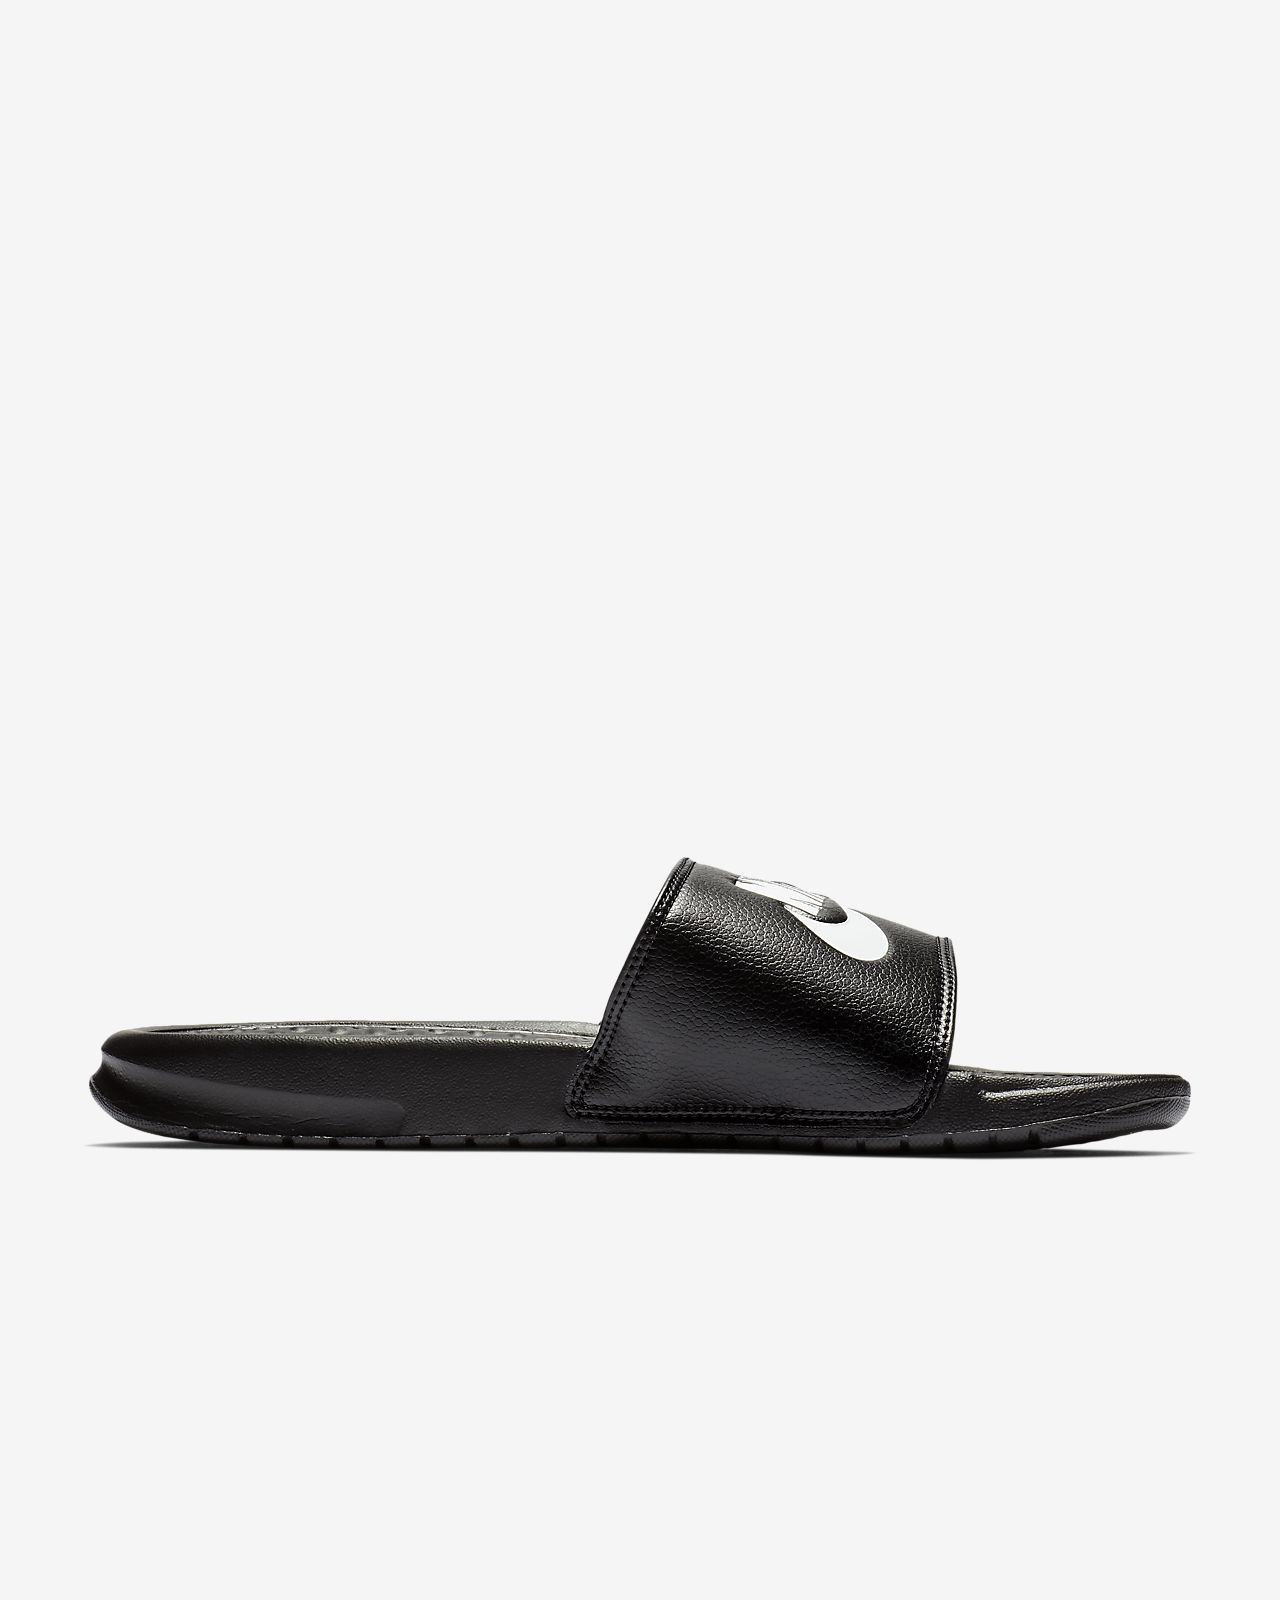 a5d9692d36a0c6 Low Resolution Nike Benassi Slide Nike Benassi Slide